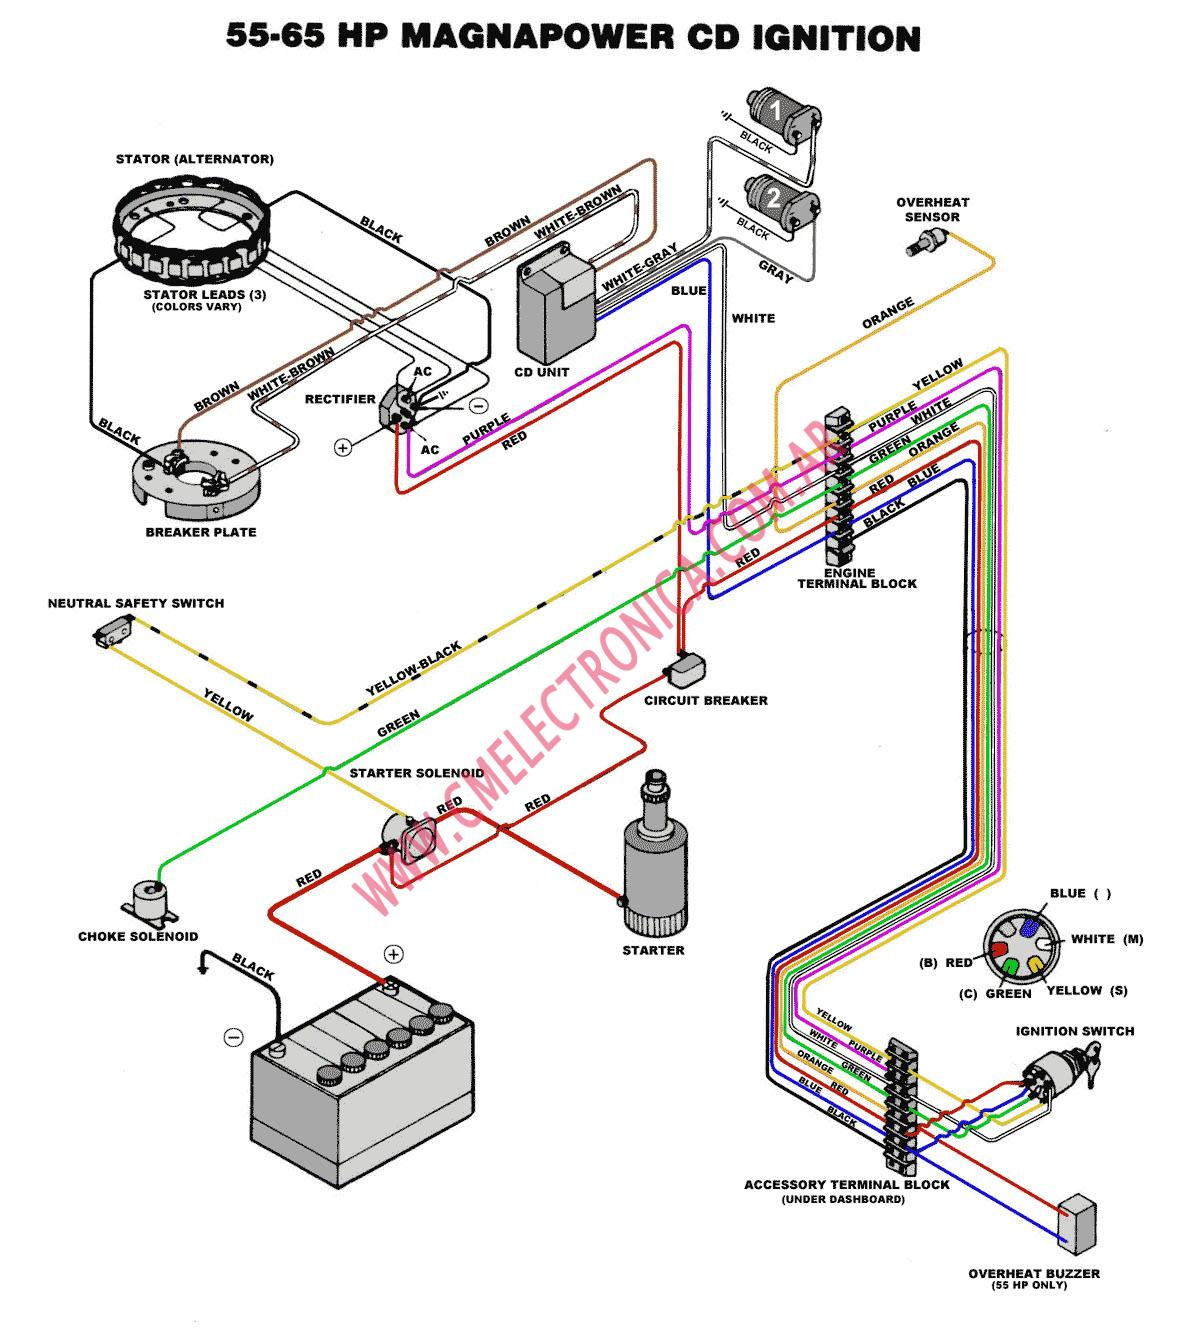 98 Gti Wiring Diagram Auto Electrical Holder Fuse Box 87 Dakika Diagrama Chrysler Force 55 65mag2